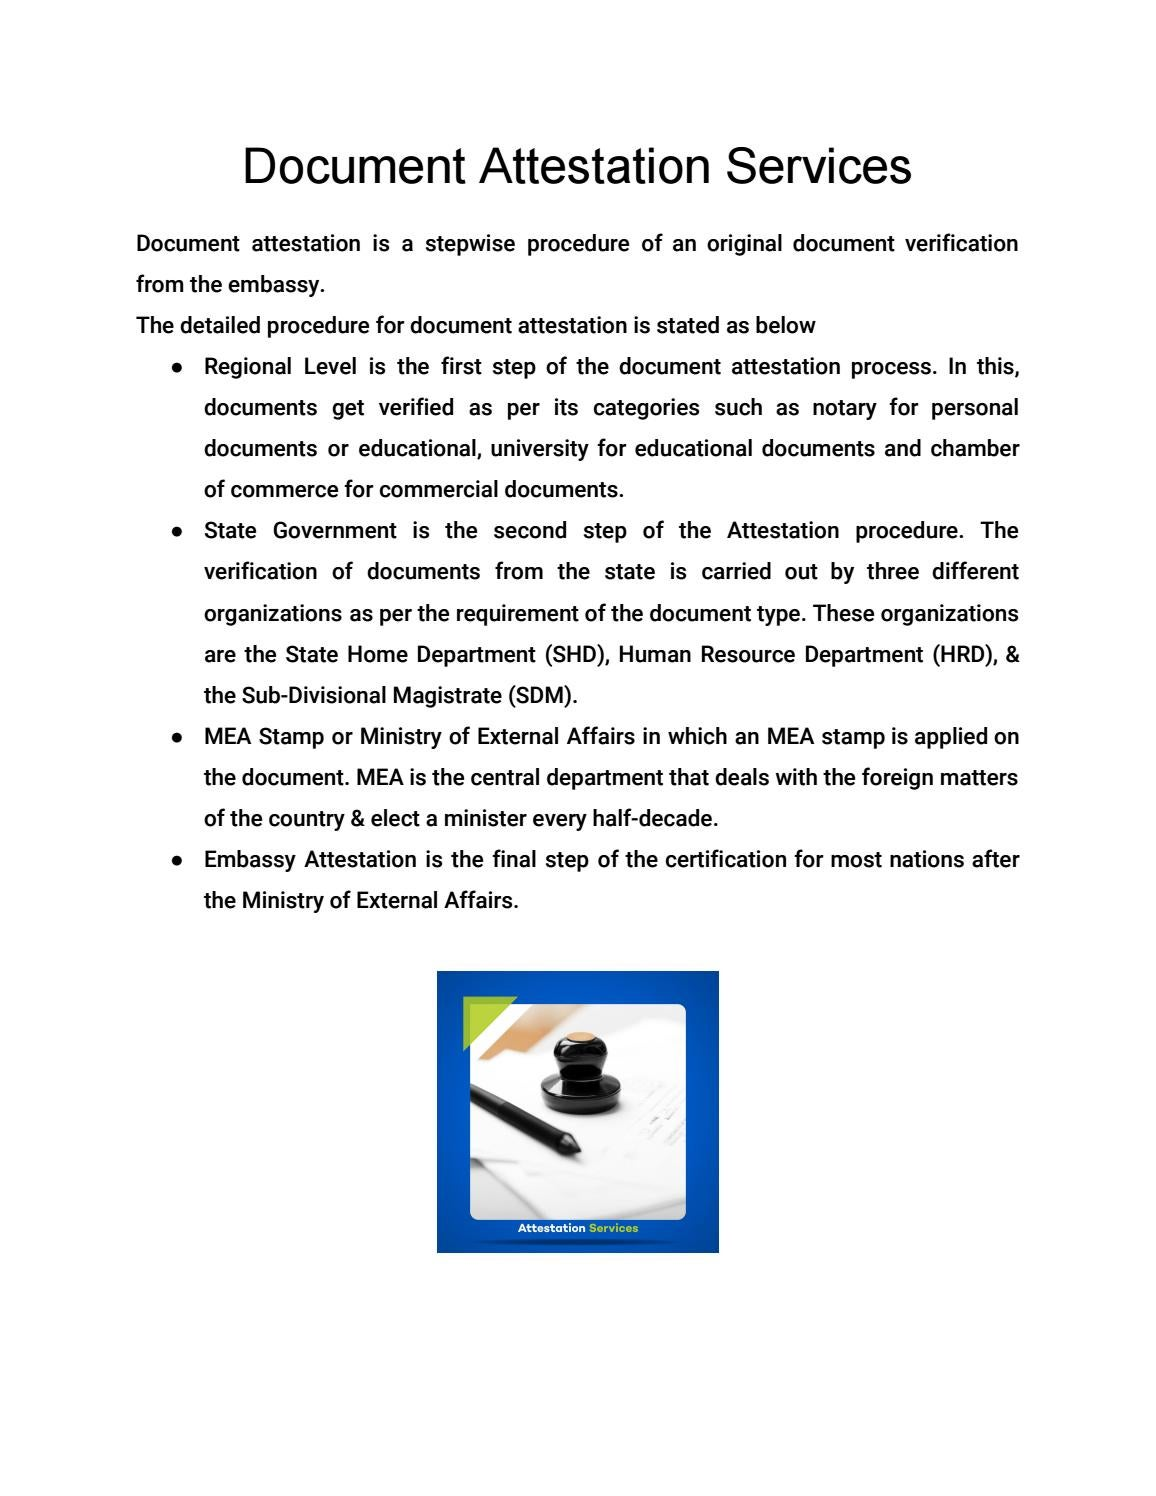 Document Attestation Services By Pec Attestation Apostille And Translation Services Issuu